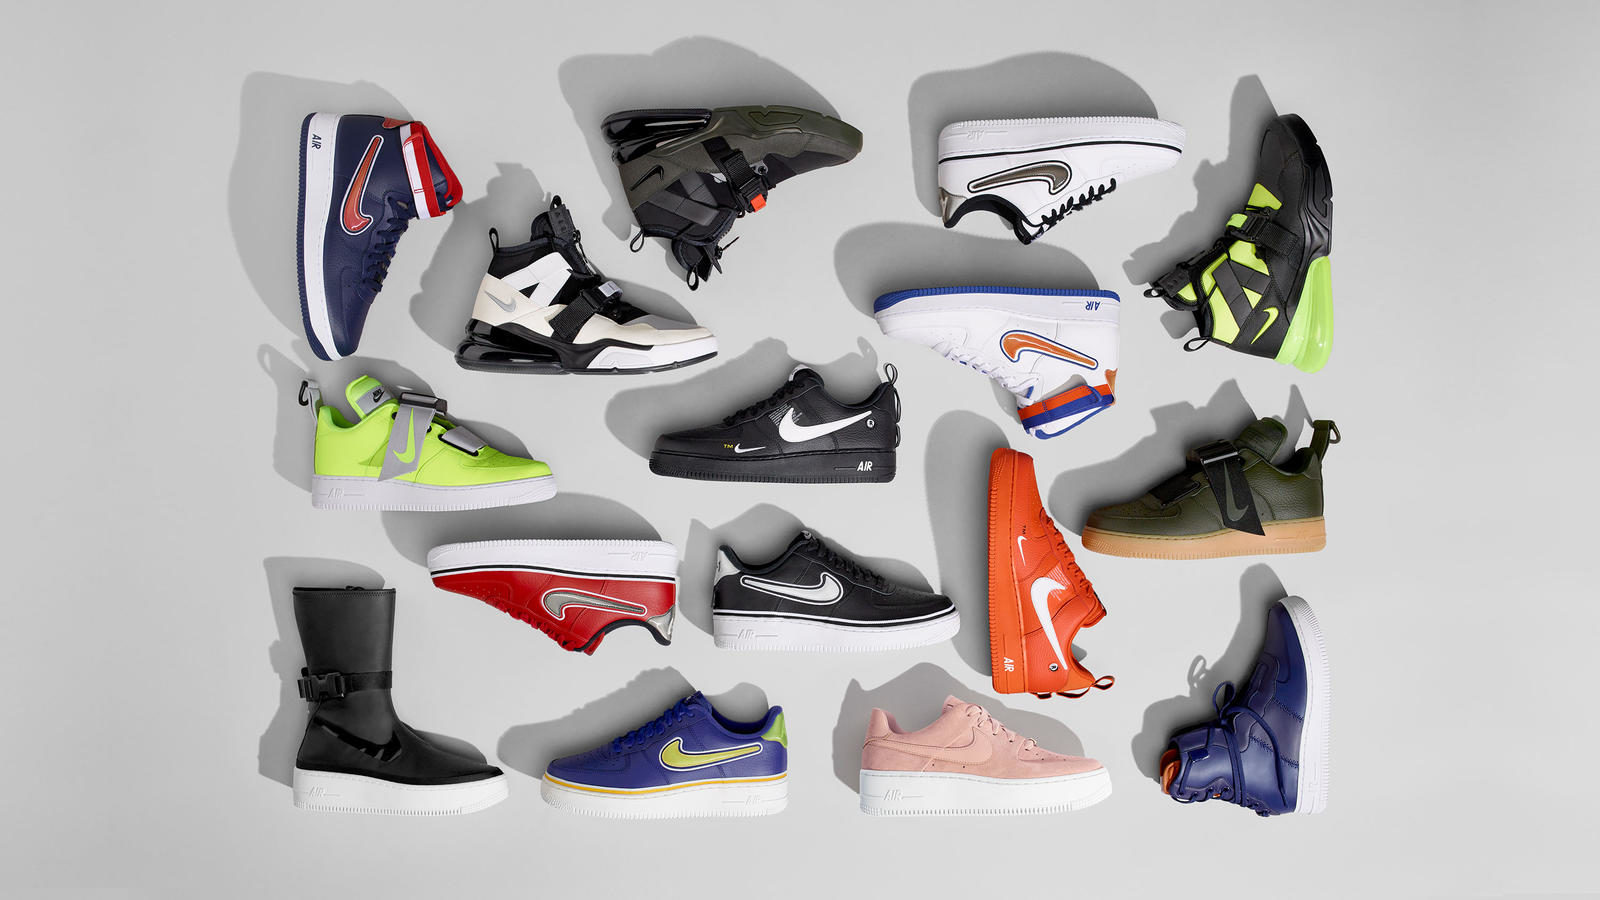 Sneakerheads exclusive: 6 sneakers you must have in your collection